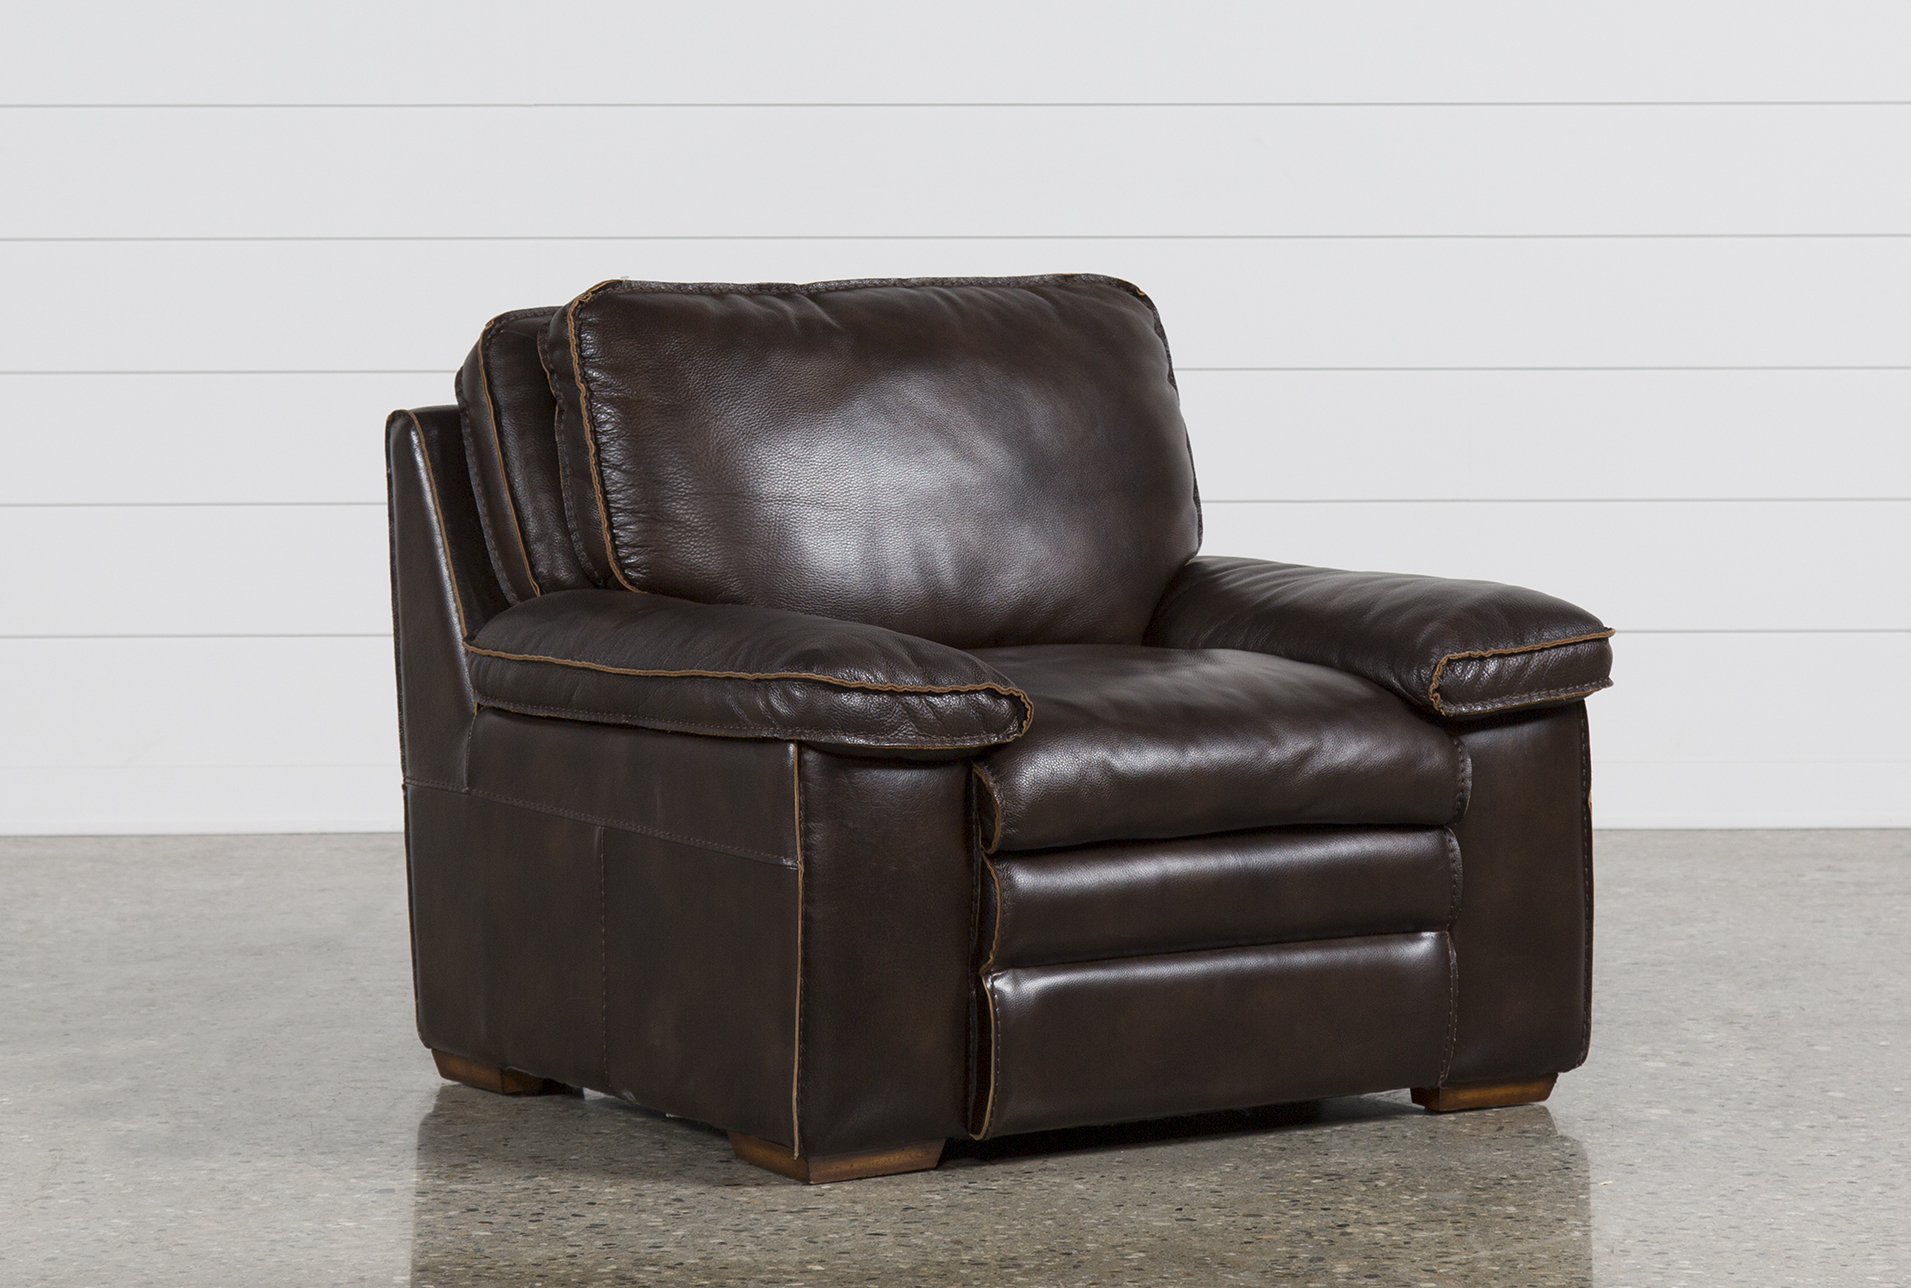 Charmant Walter Leather Chair (Qty: 1) Has Been Successfully Added To Your Cart.